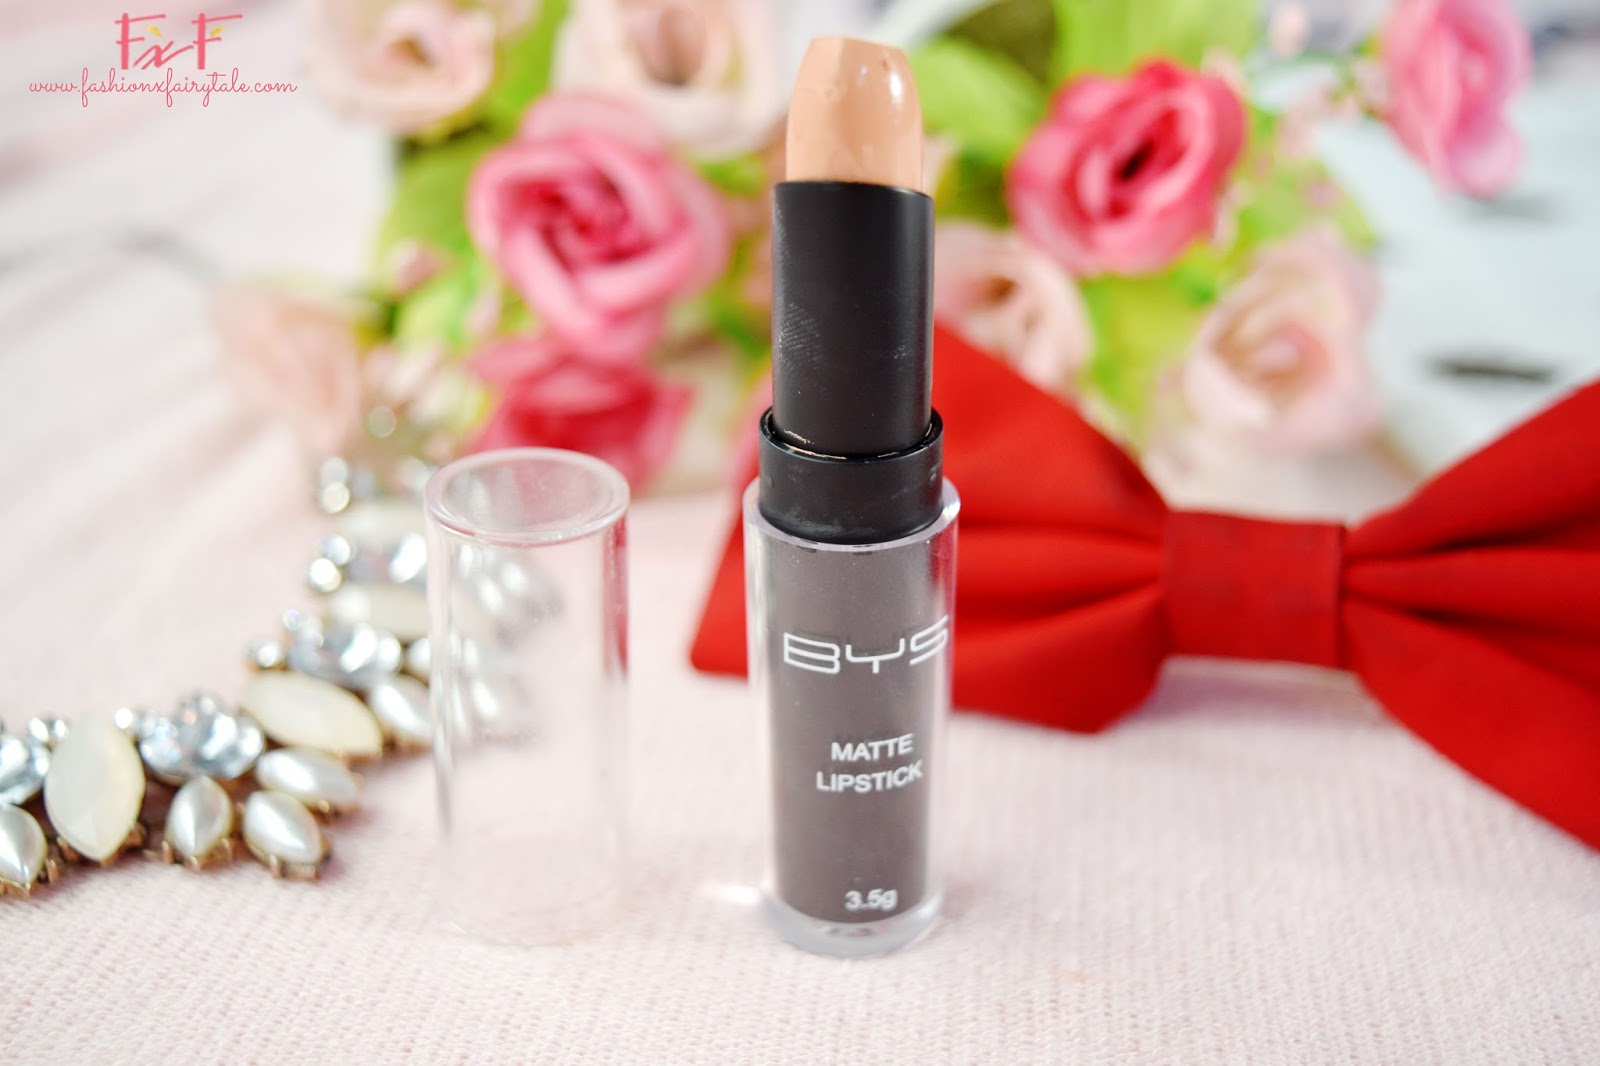 BYS Matte Lipstick in Latte To Go | Review & Swatches